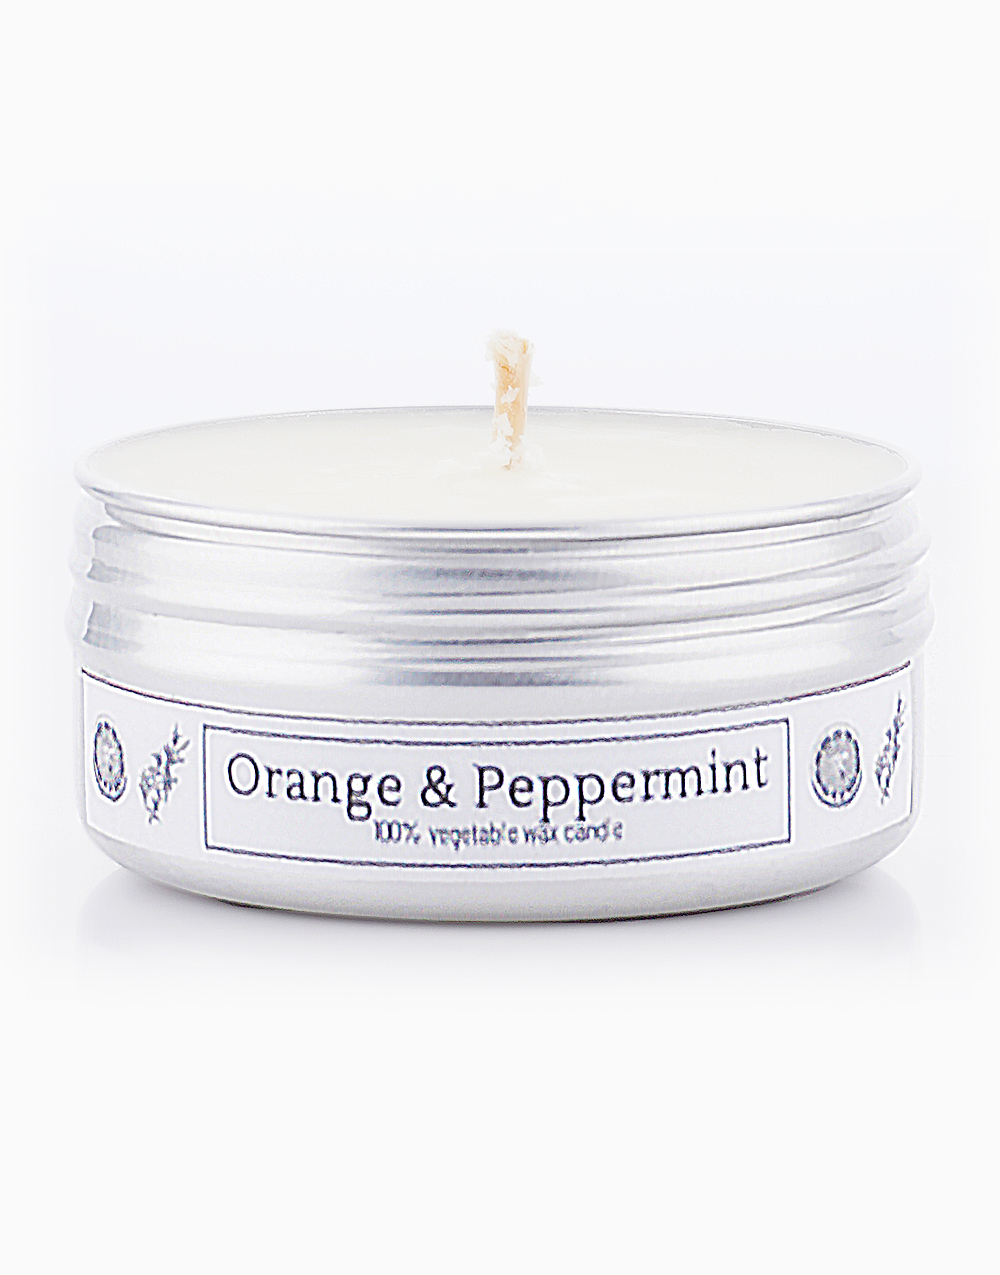 Orange & Peppermint Soy Candle (2oz) by Calyx Life & Home